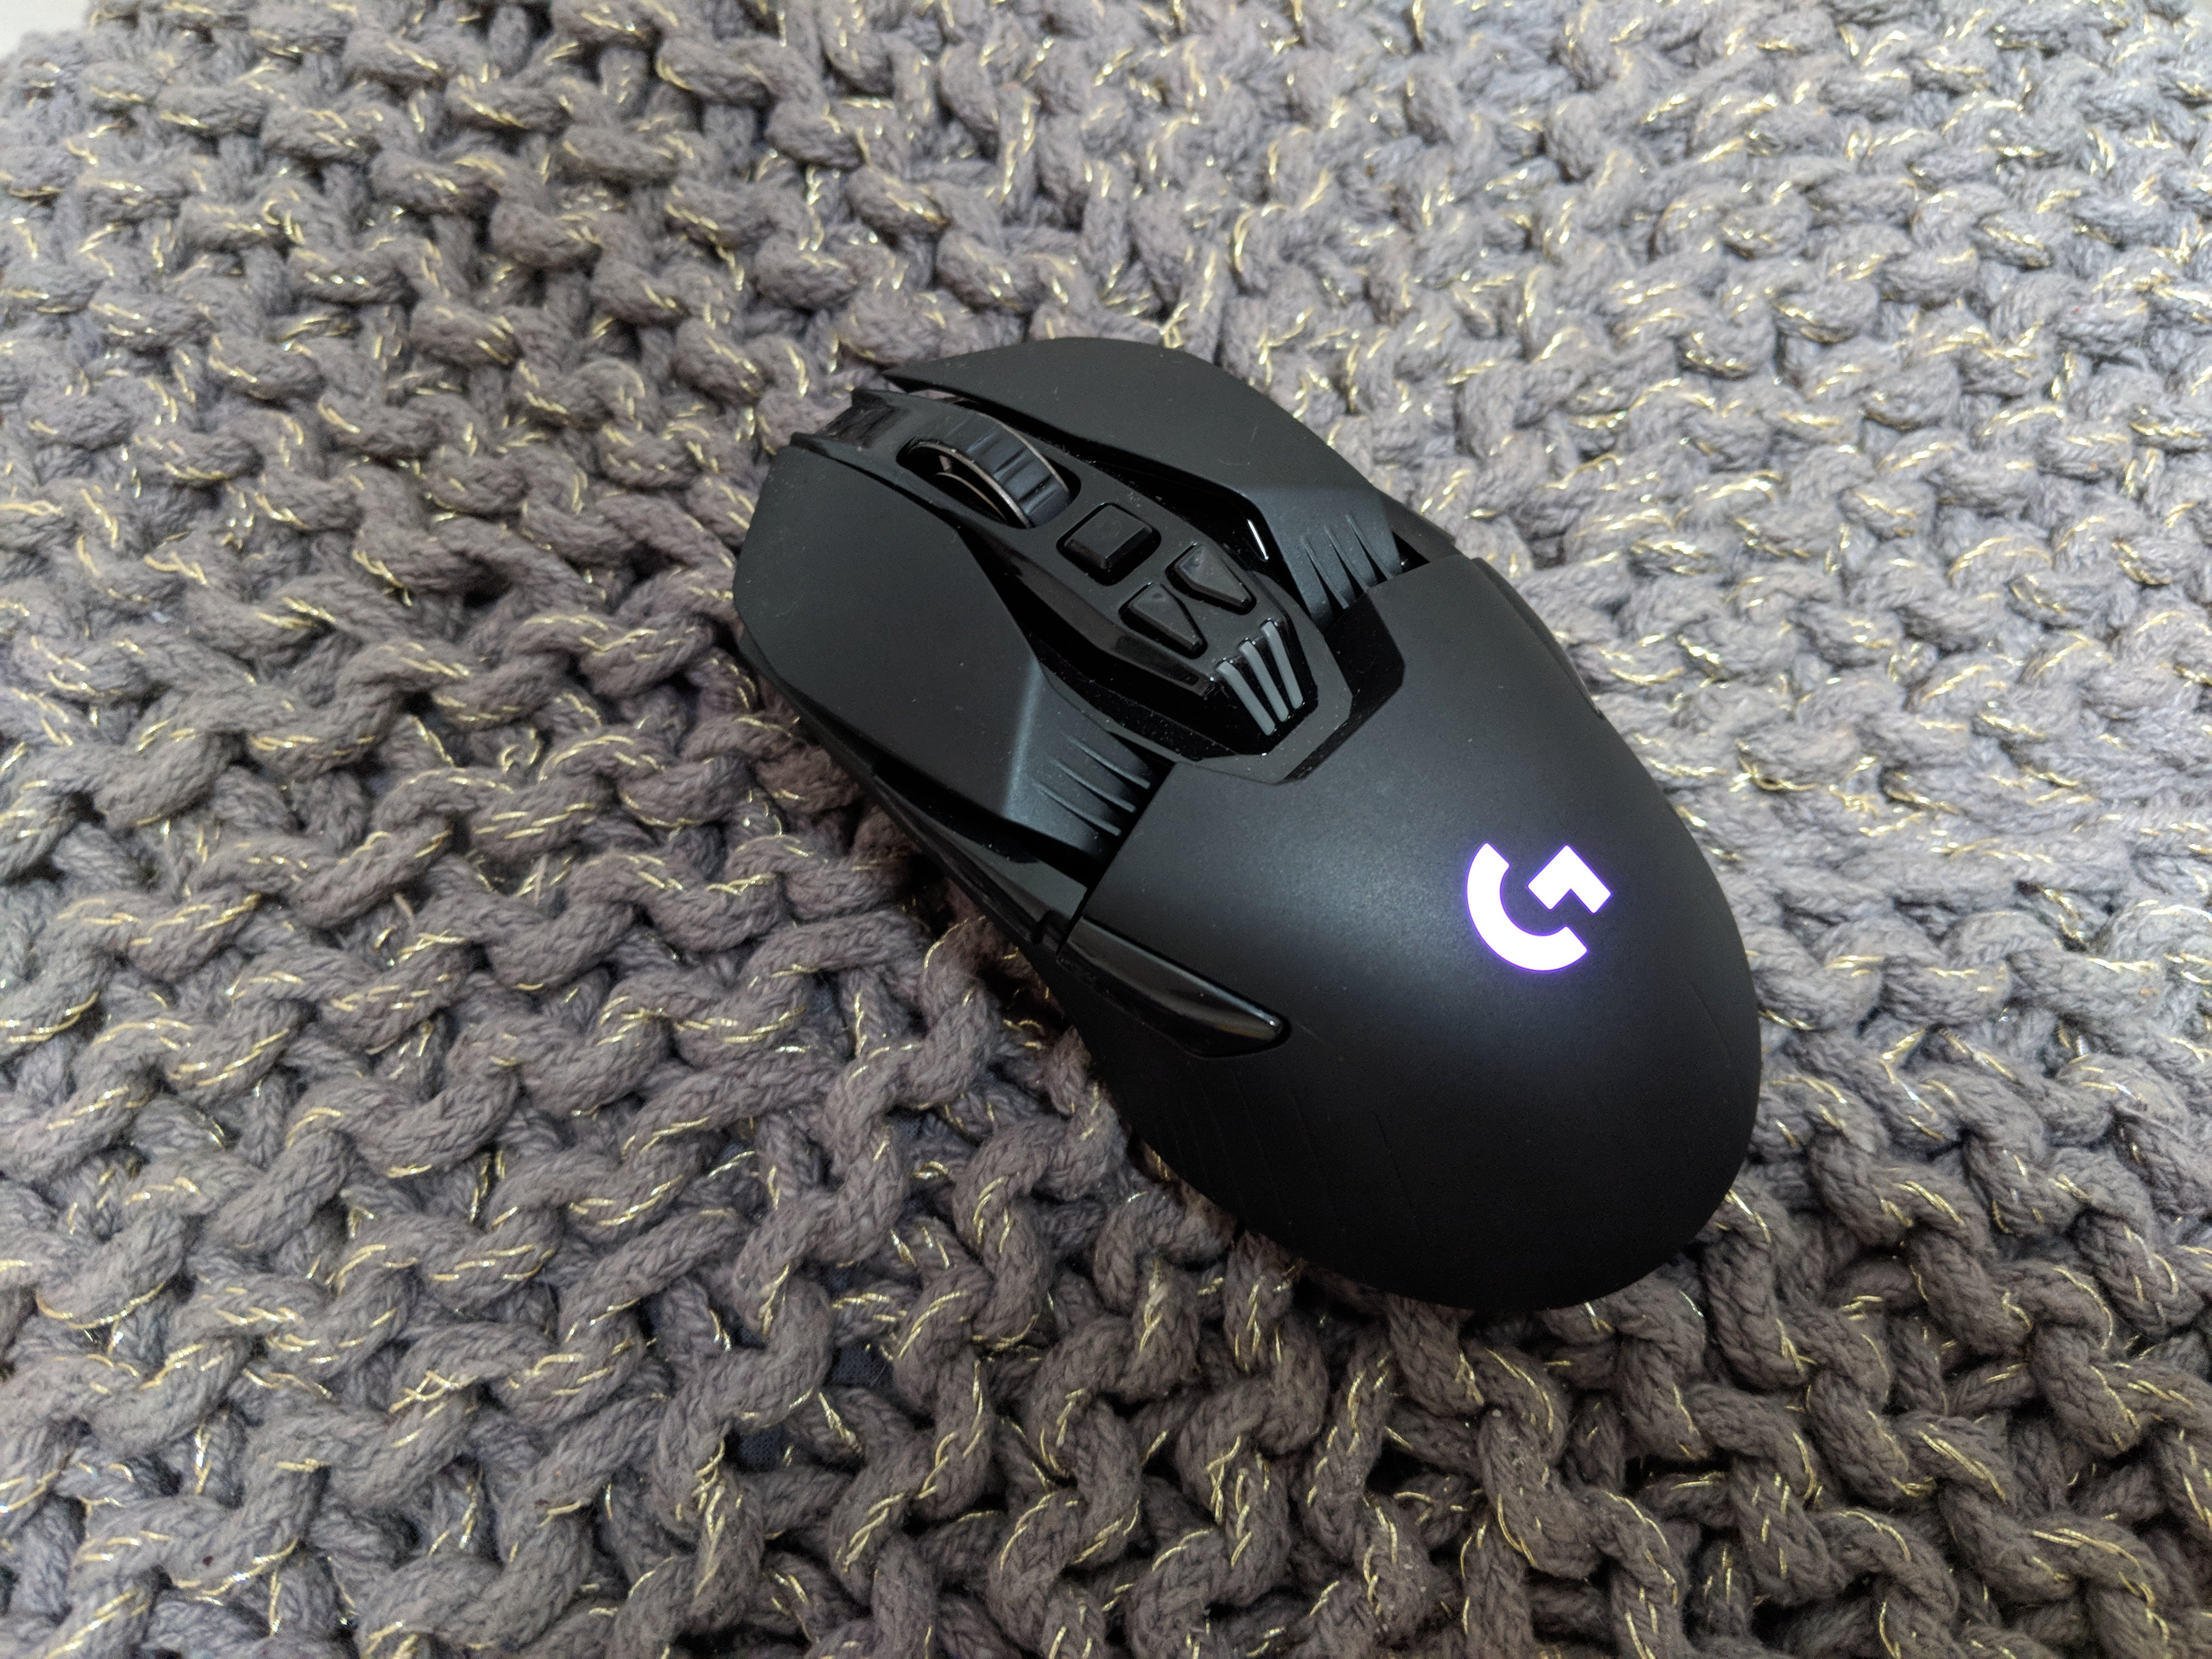 best gaming mouse 2019 13 top notch wired and wireless mice trusted reviews. Black Bedroom Furniture Sets. Home Design Ideas